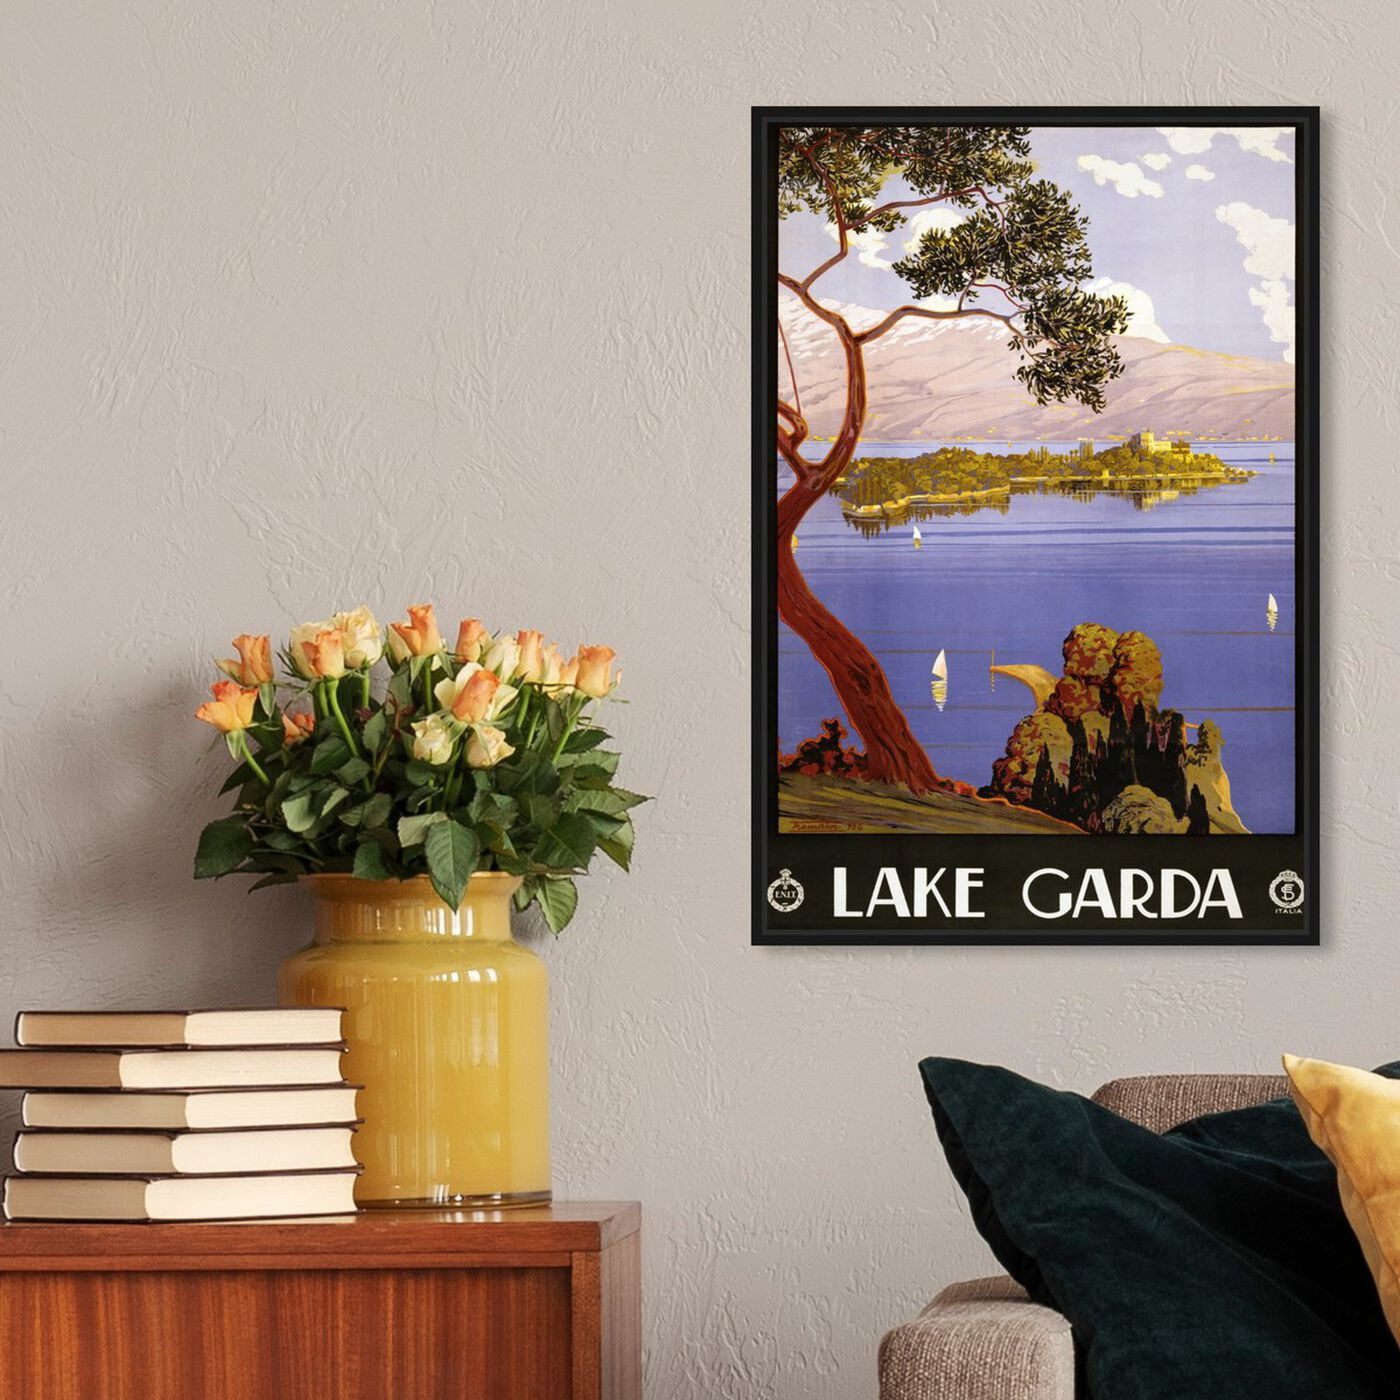 Hanging view of Lake Garda featuring nature and landscape and nature art.